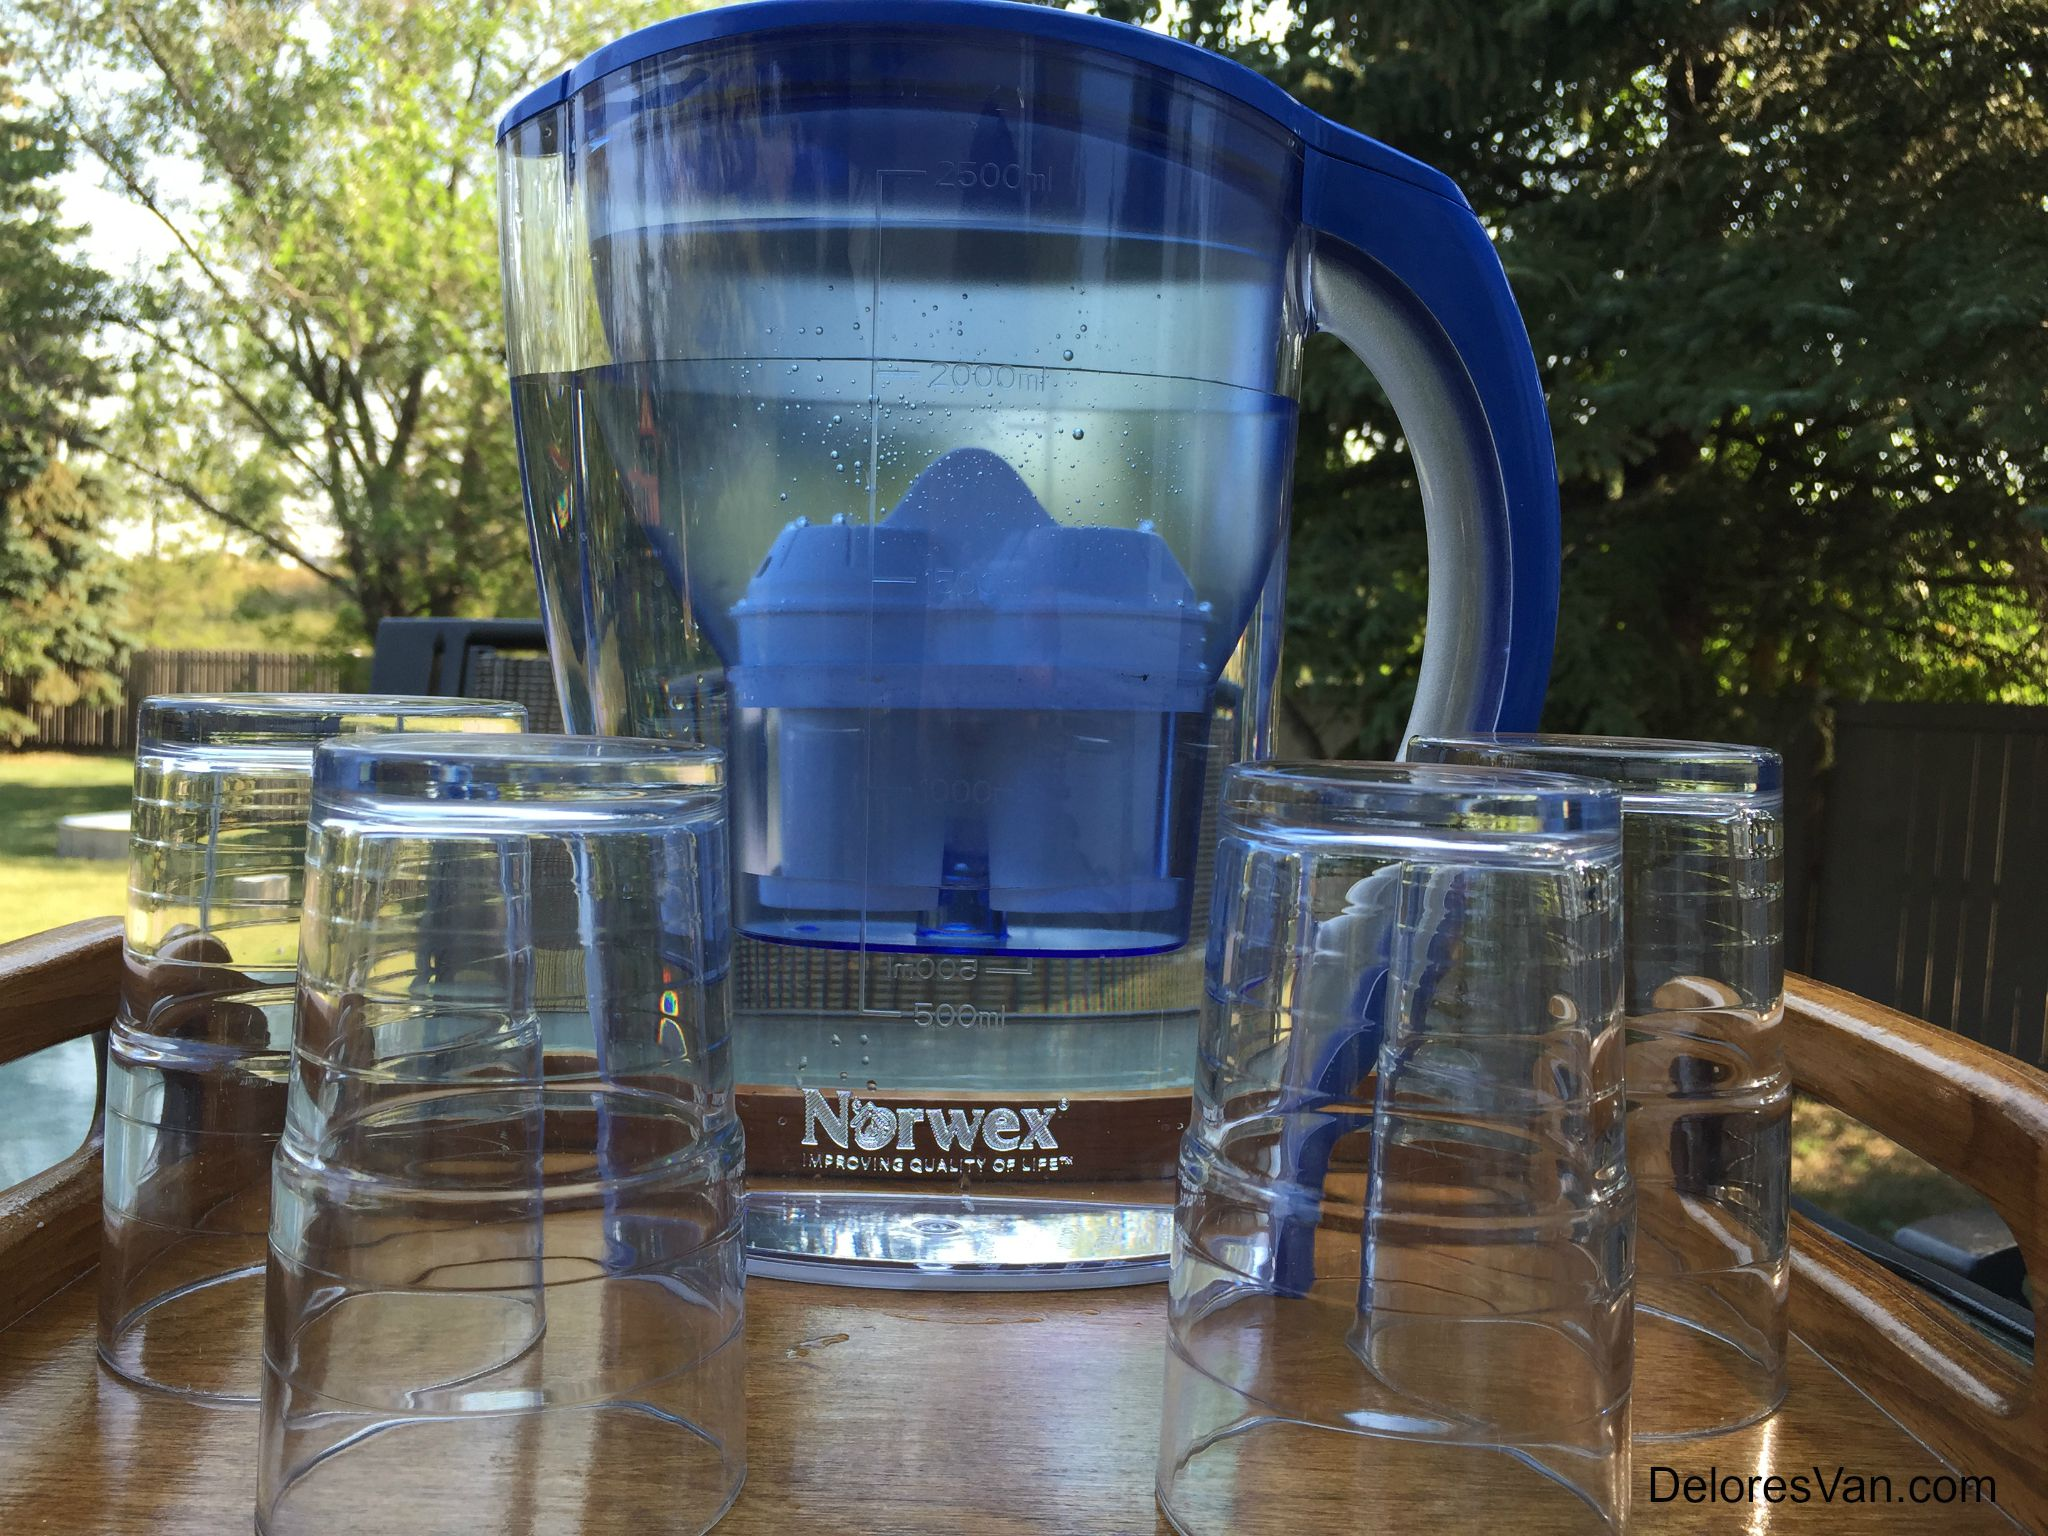 New Product — Norwex Exclusive Water Filtration Technology System